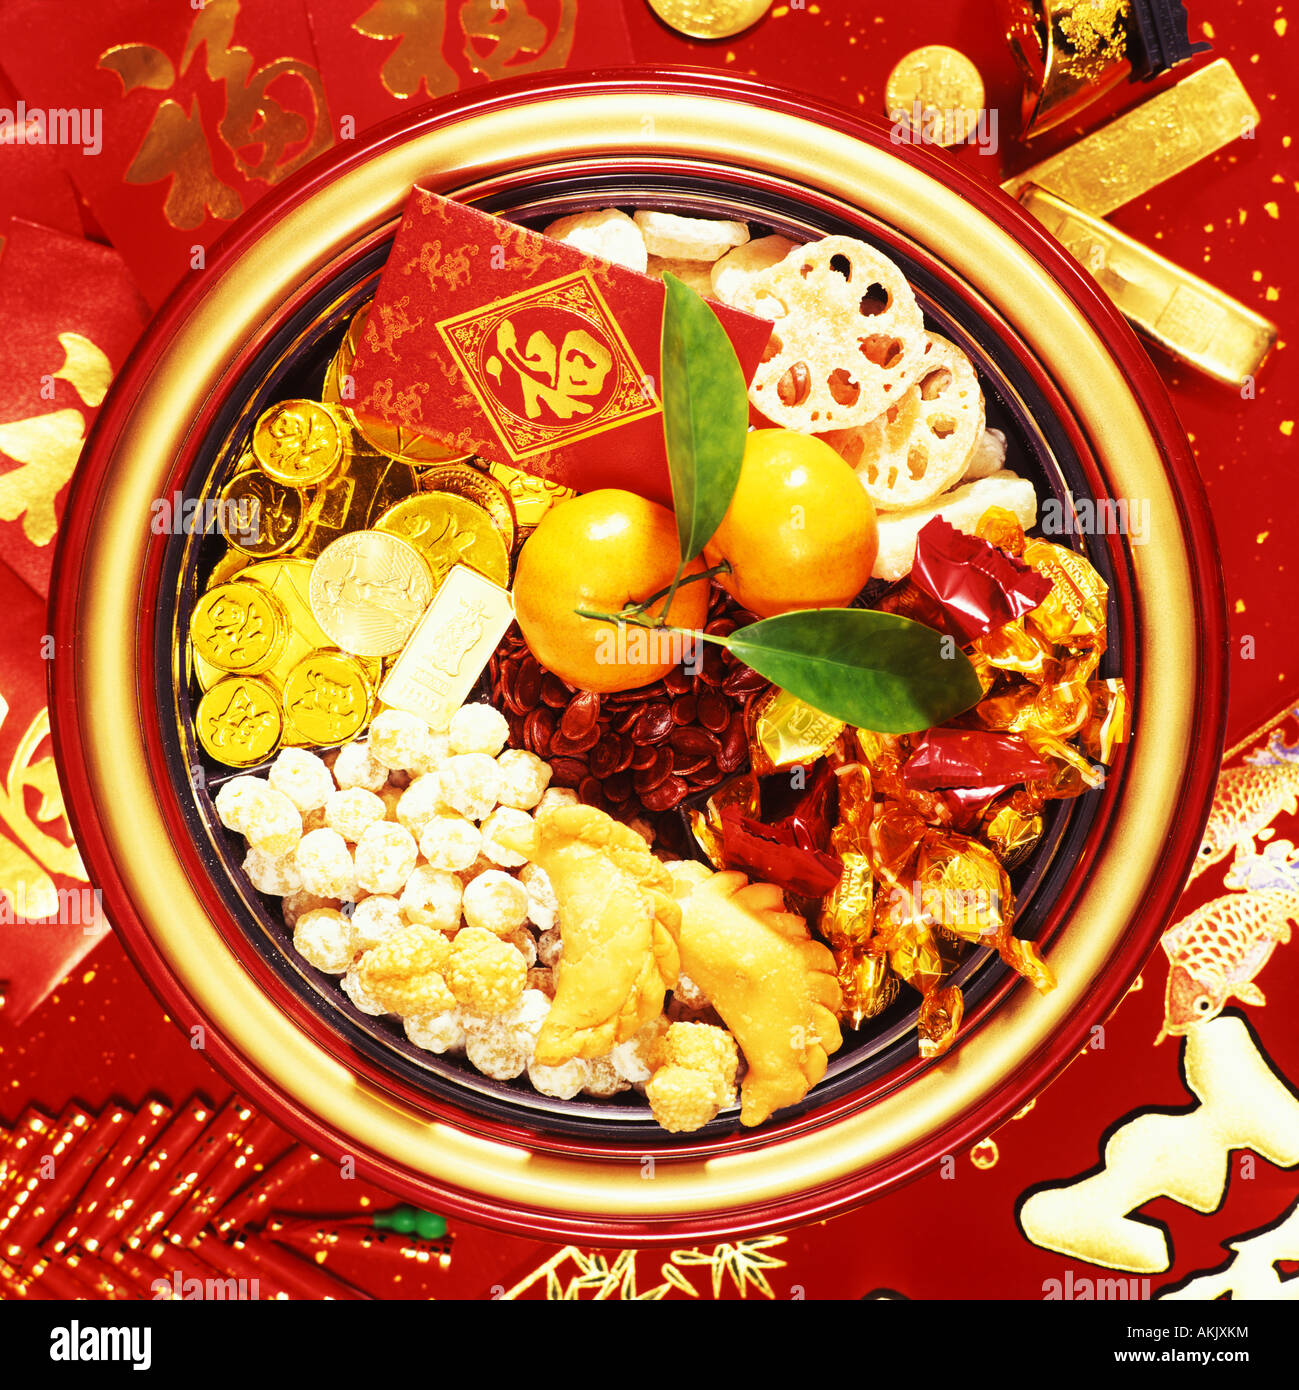 candy box for chinese new year - Chinese New Year Candy